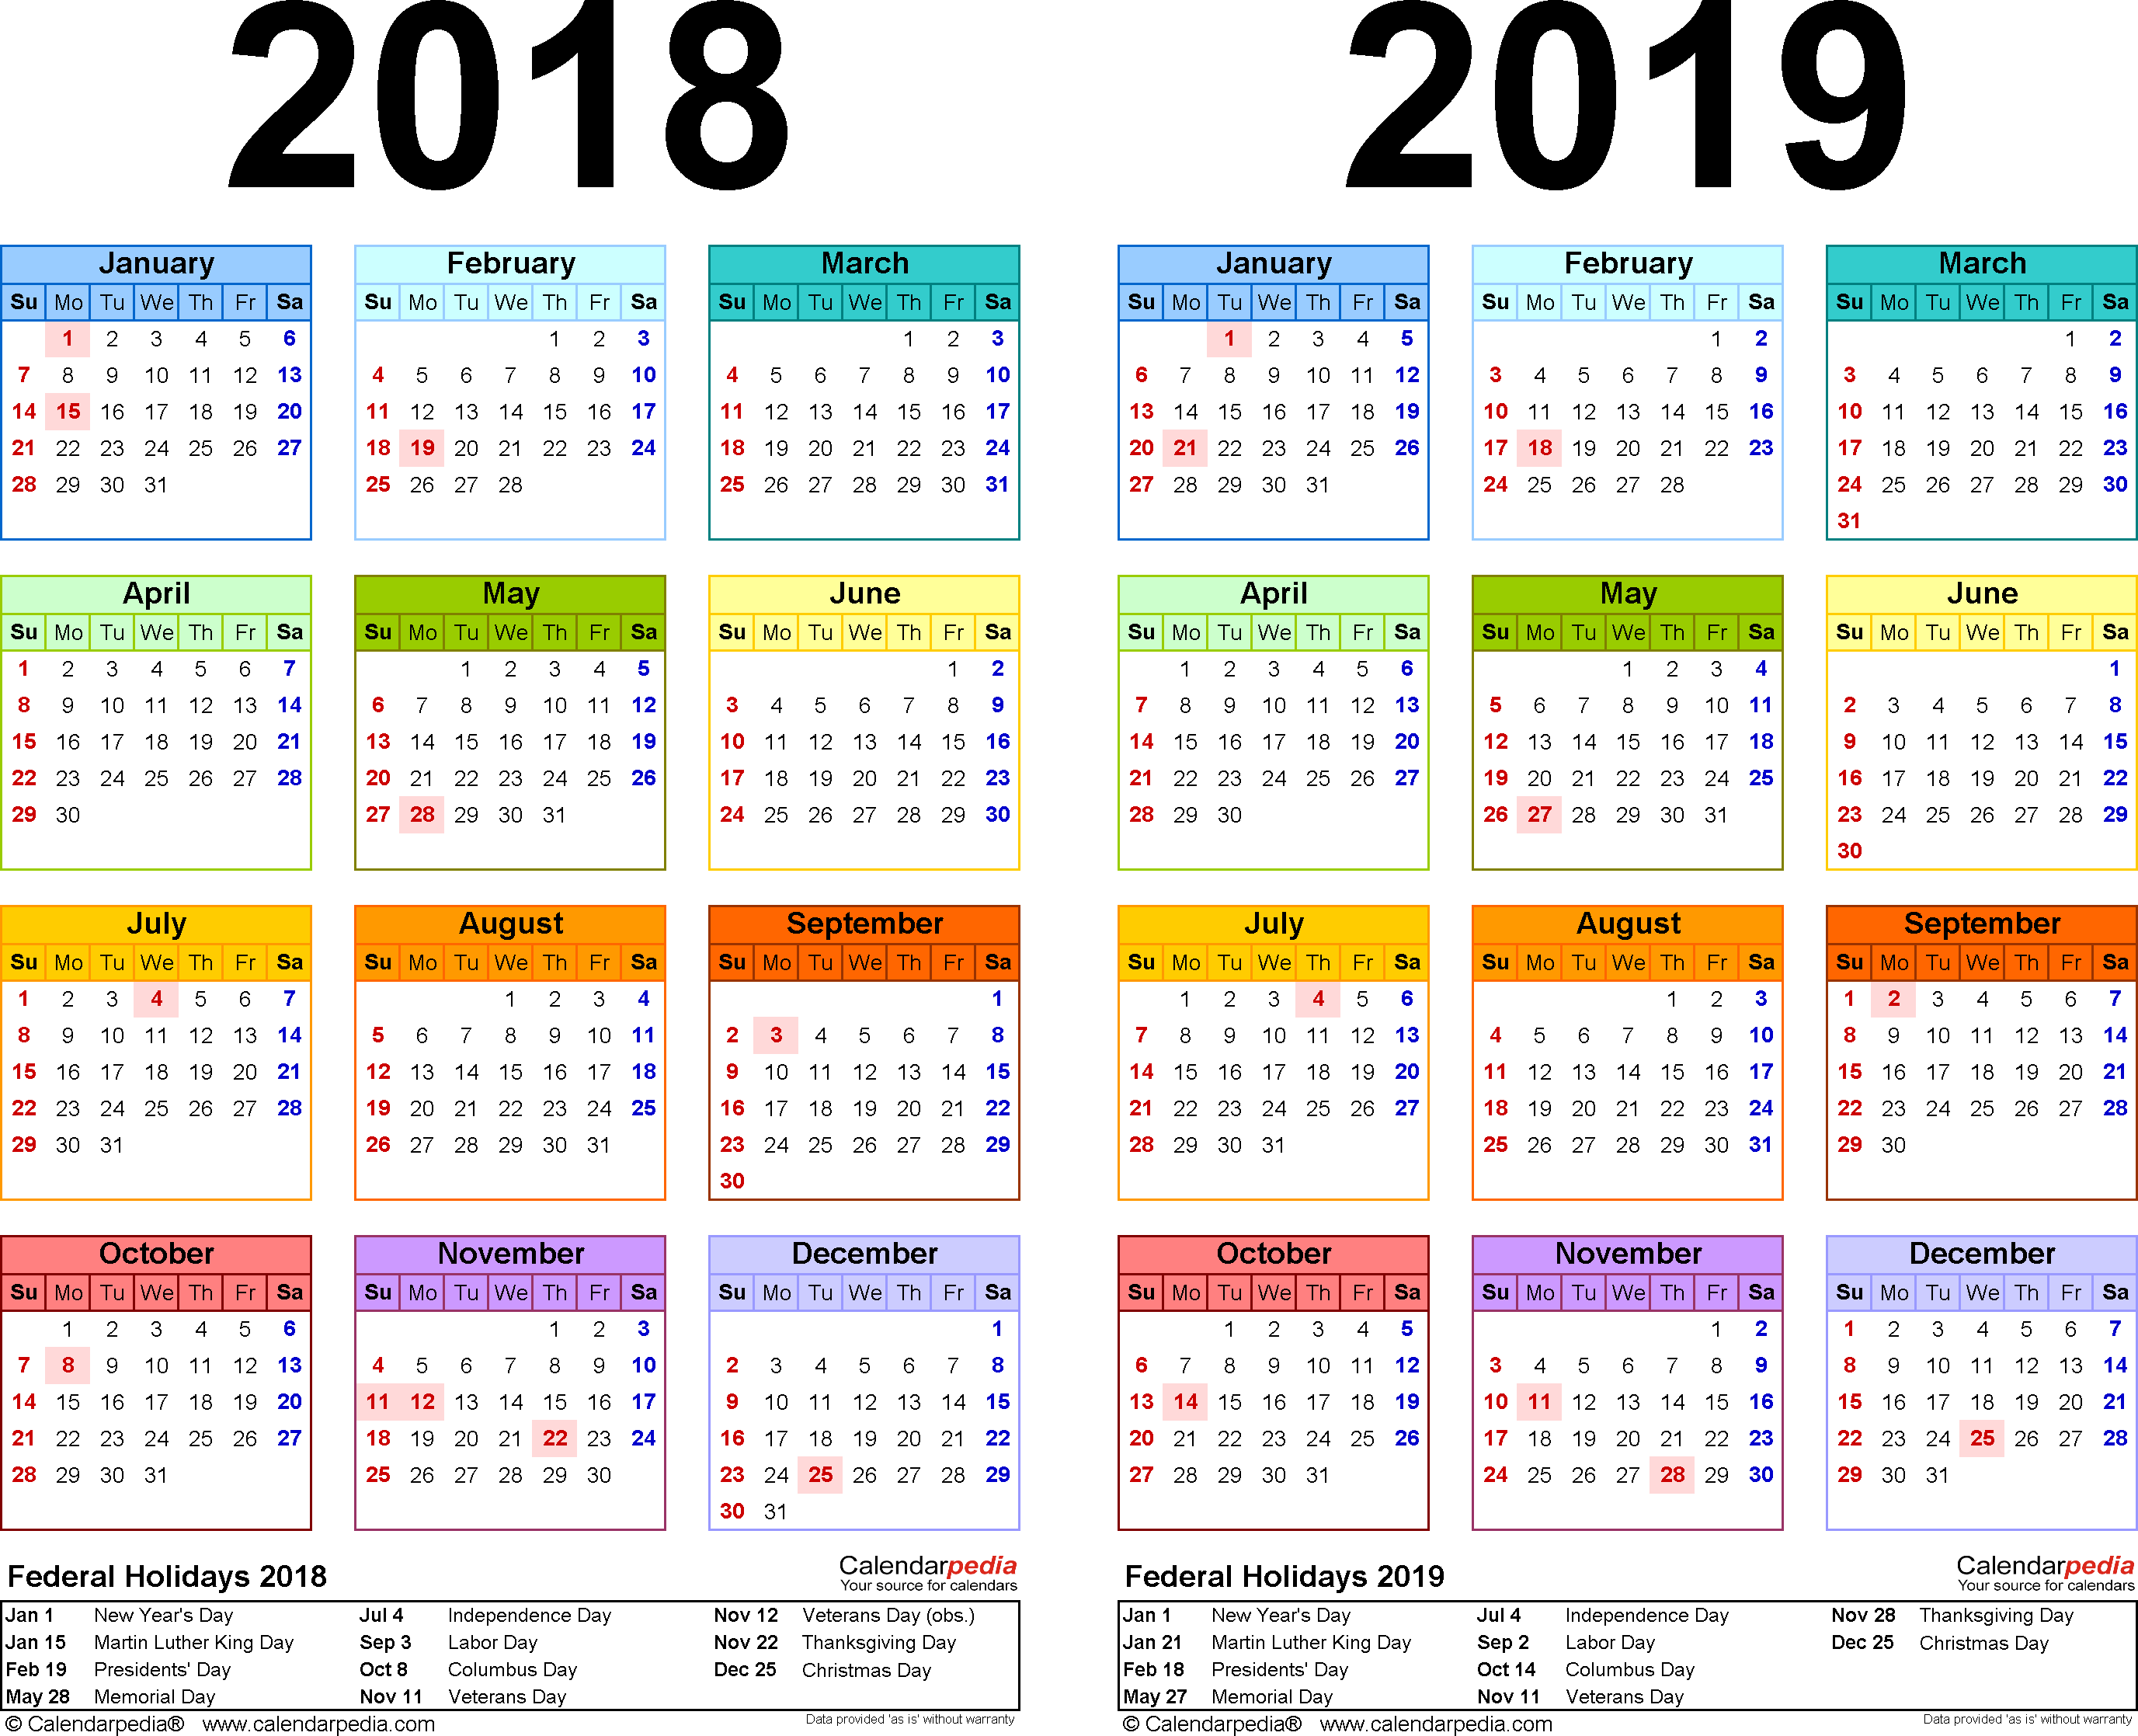 Template 2: Excel template for two year calendar 2018/2019 (landscape orientation, 1 page, in color)